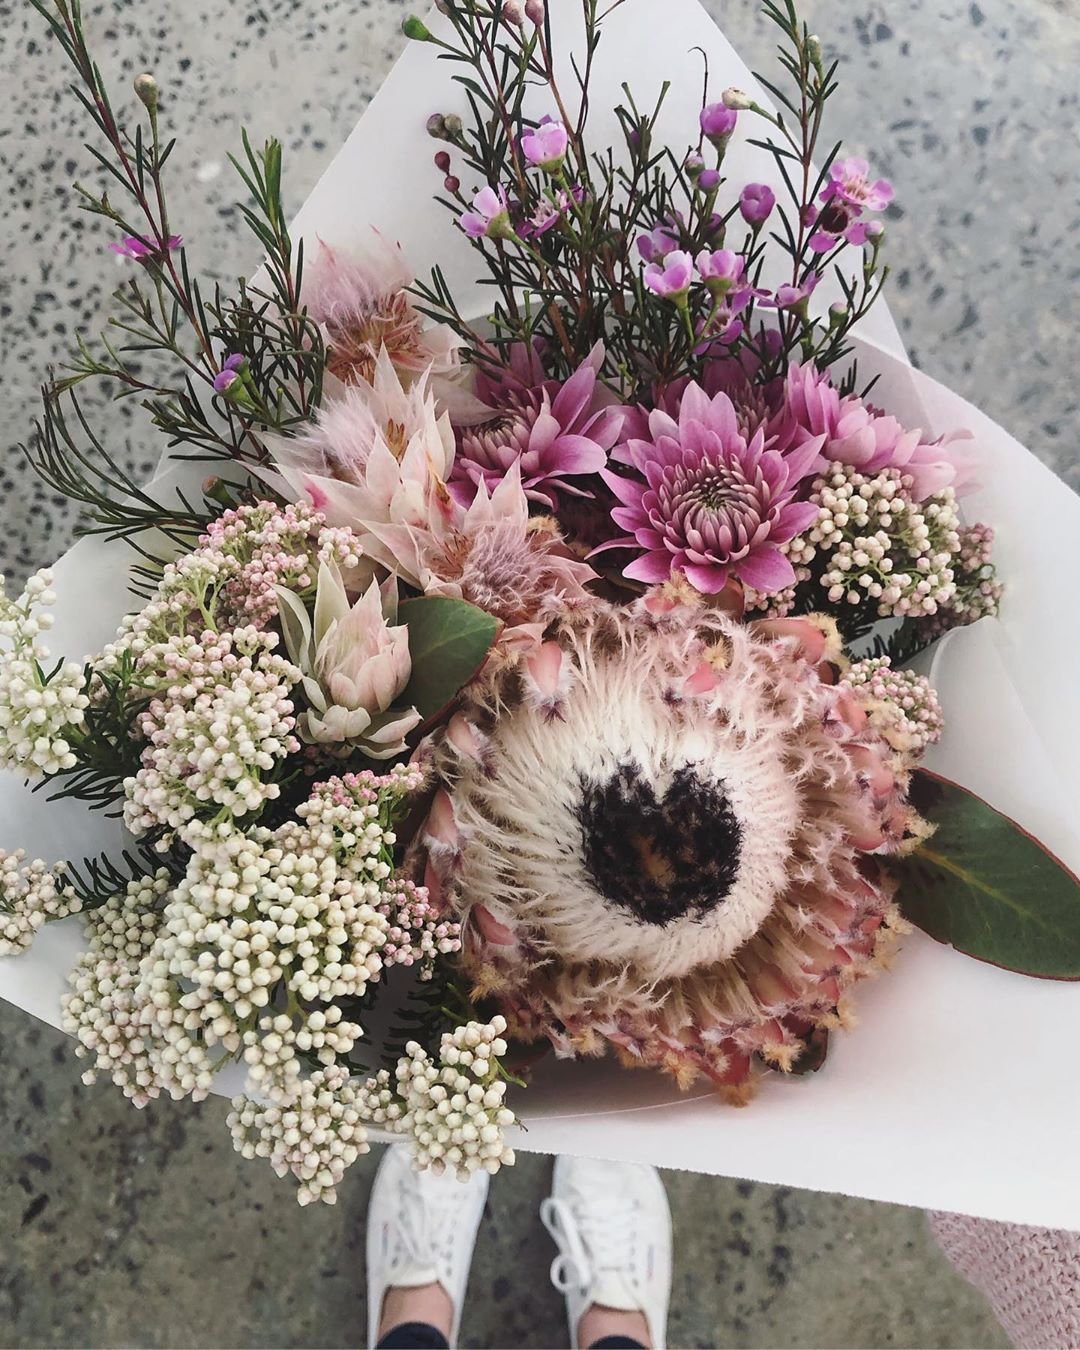 🇿🇦 We celebrate our country's beautiful heritage with the Protea Magnifica, also known as The Queen Protea. Monday's Posy is magnifica protea with delicate blushing brides, rice flowers, wax and chrysanthemums. Order online before 1pm for delivery today . . . . #Petalandpost#capetown#capetownflorist#lovezabuyza#localzadesign#lovelocalza#hellopretty#capetownmag#cylcollective #capetownlikes#supportlocal#posylove#wedding#local#botanical#theprettyblog#gardenday#capetowninfo#handmadeincapetown#madeinsouthafrica#lokalza#durbanville#proudlysouthafrican